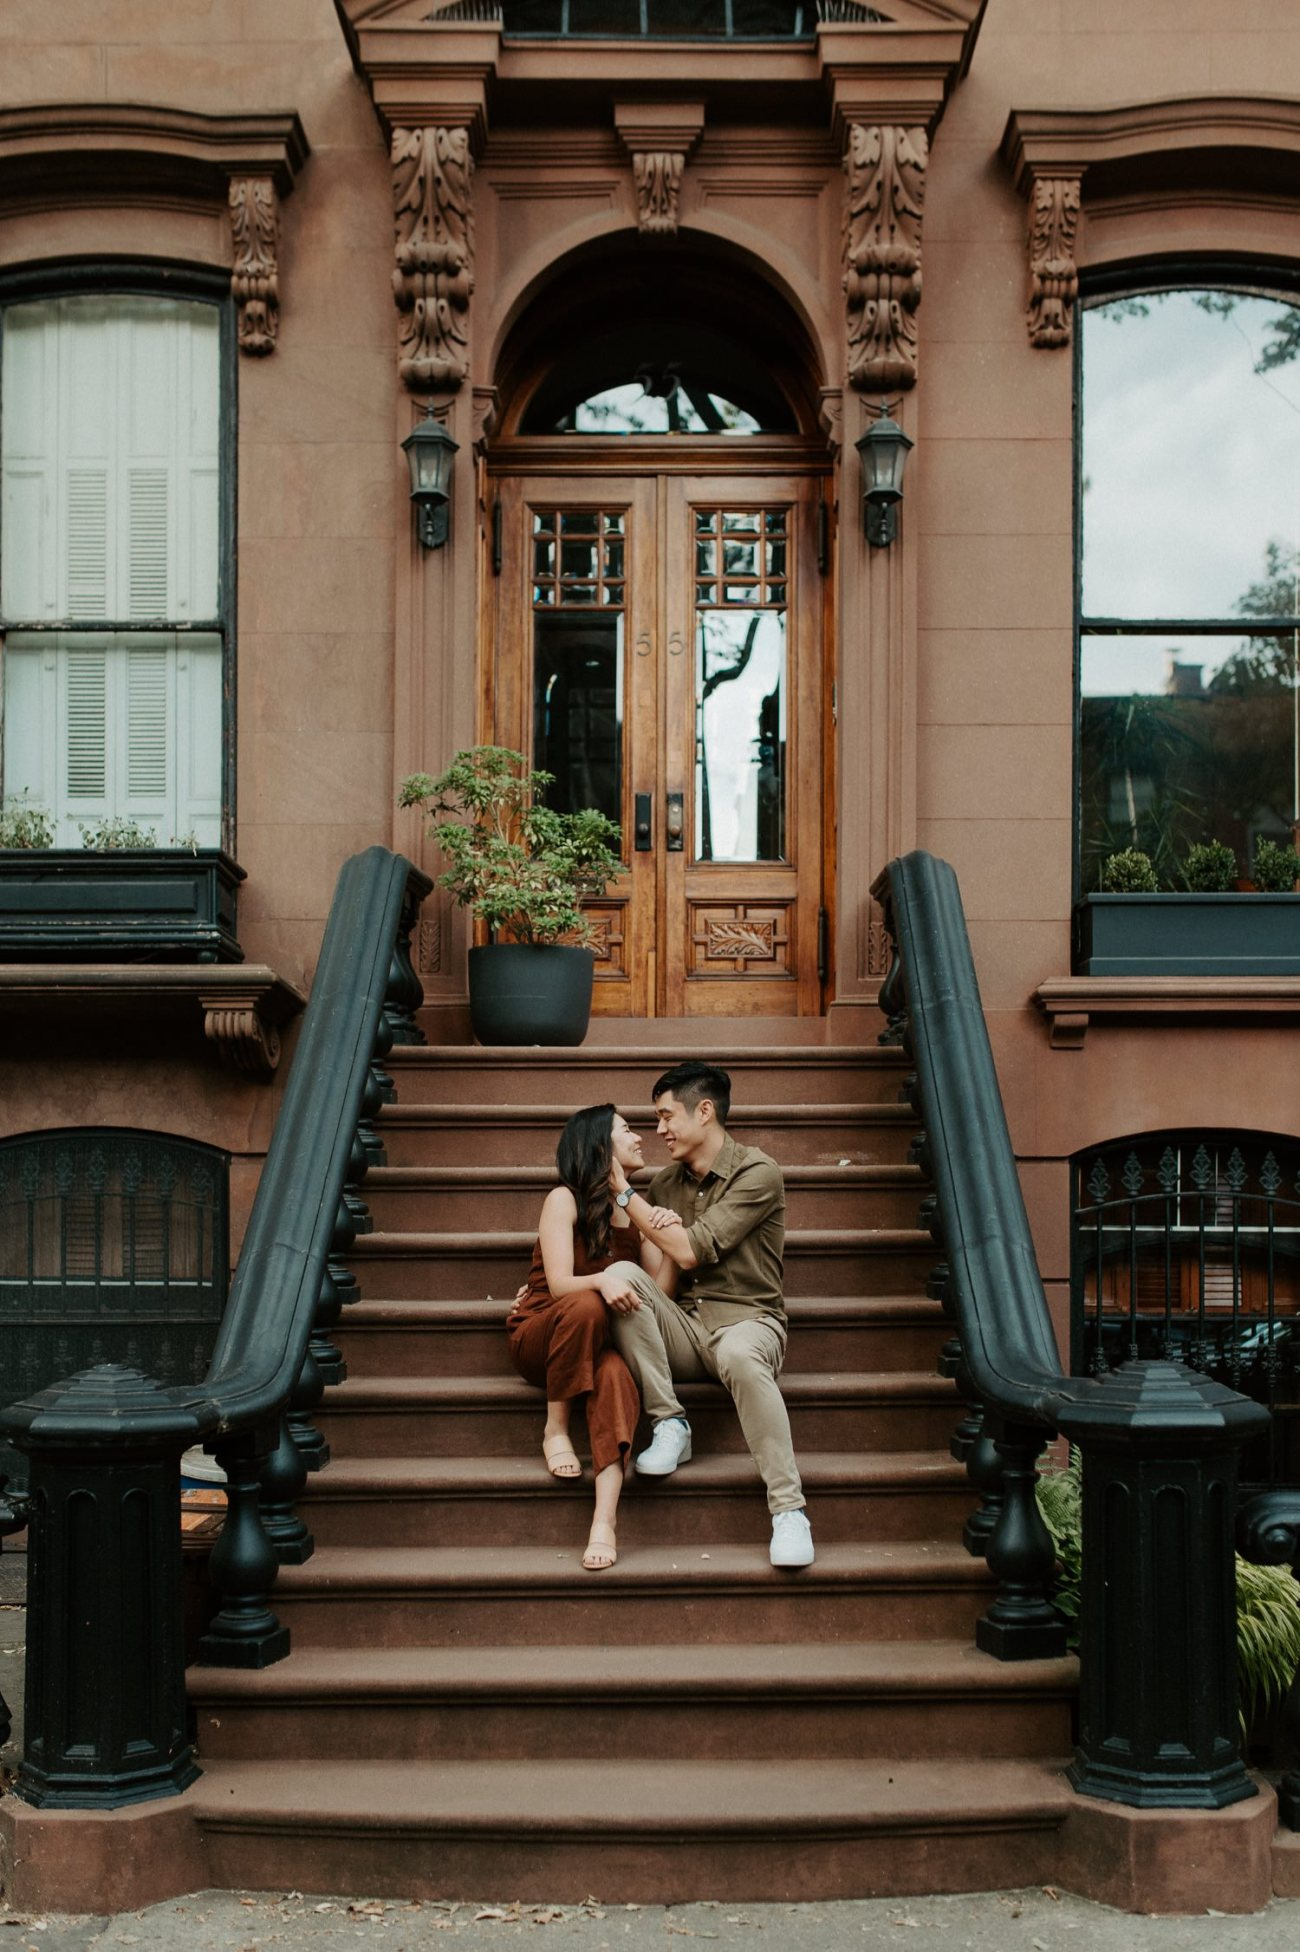 Fort Greene Brooklyn Engagement Session Brooklyn Wedding Photographer New York Wedding Photographer Anais Possamai Photography 008